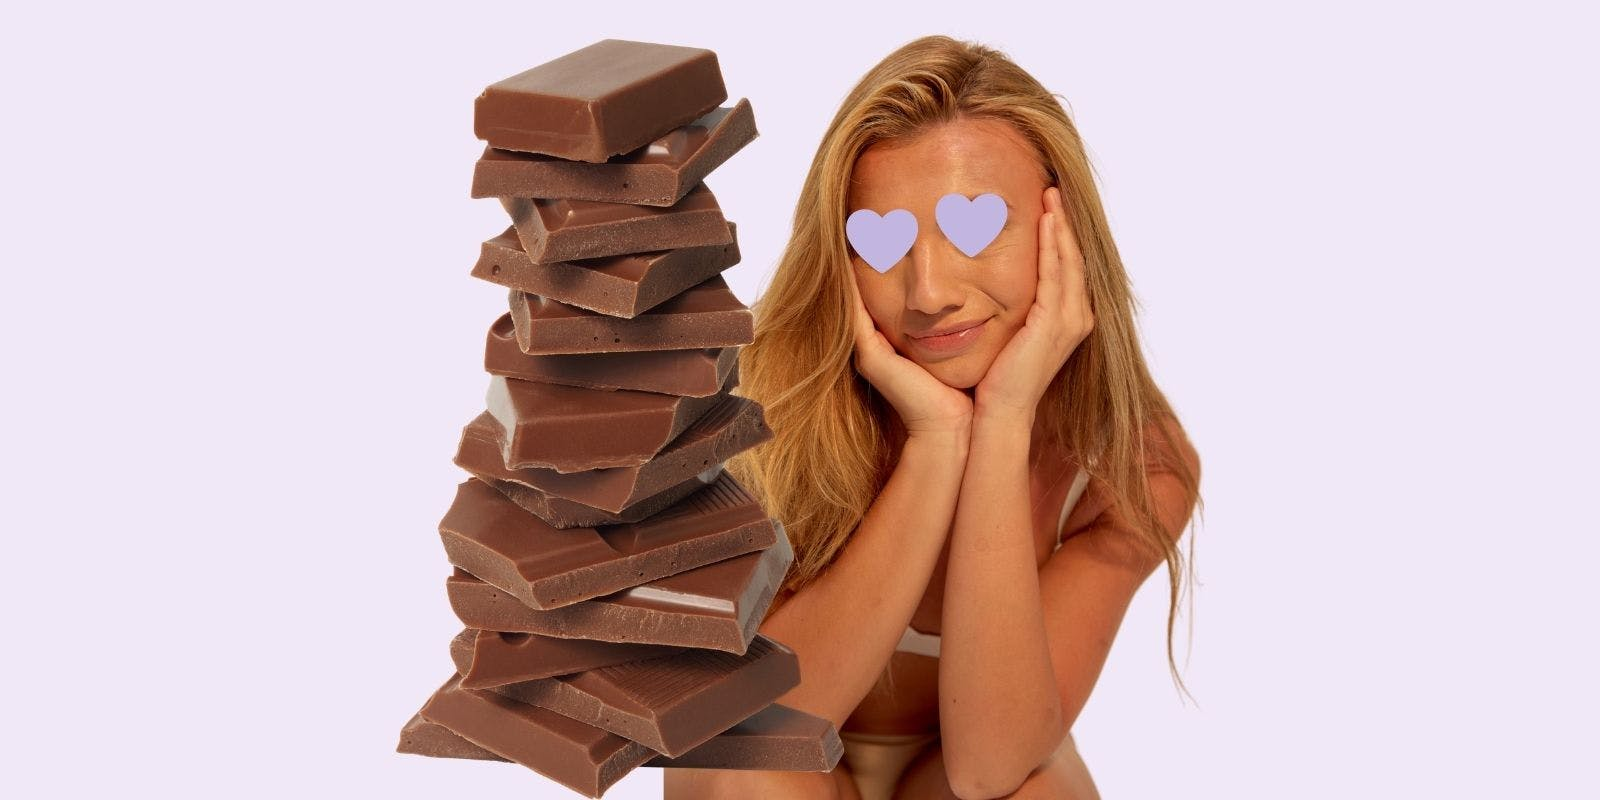 Period Chocolate Cravings